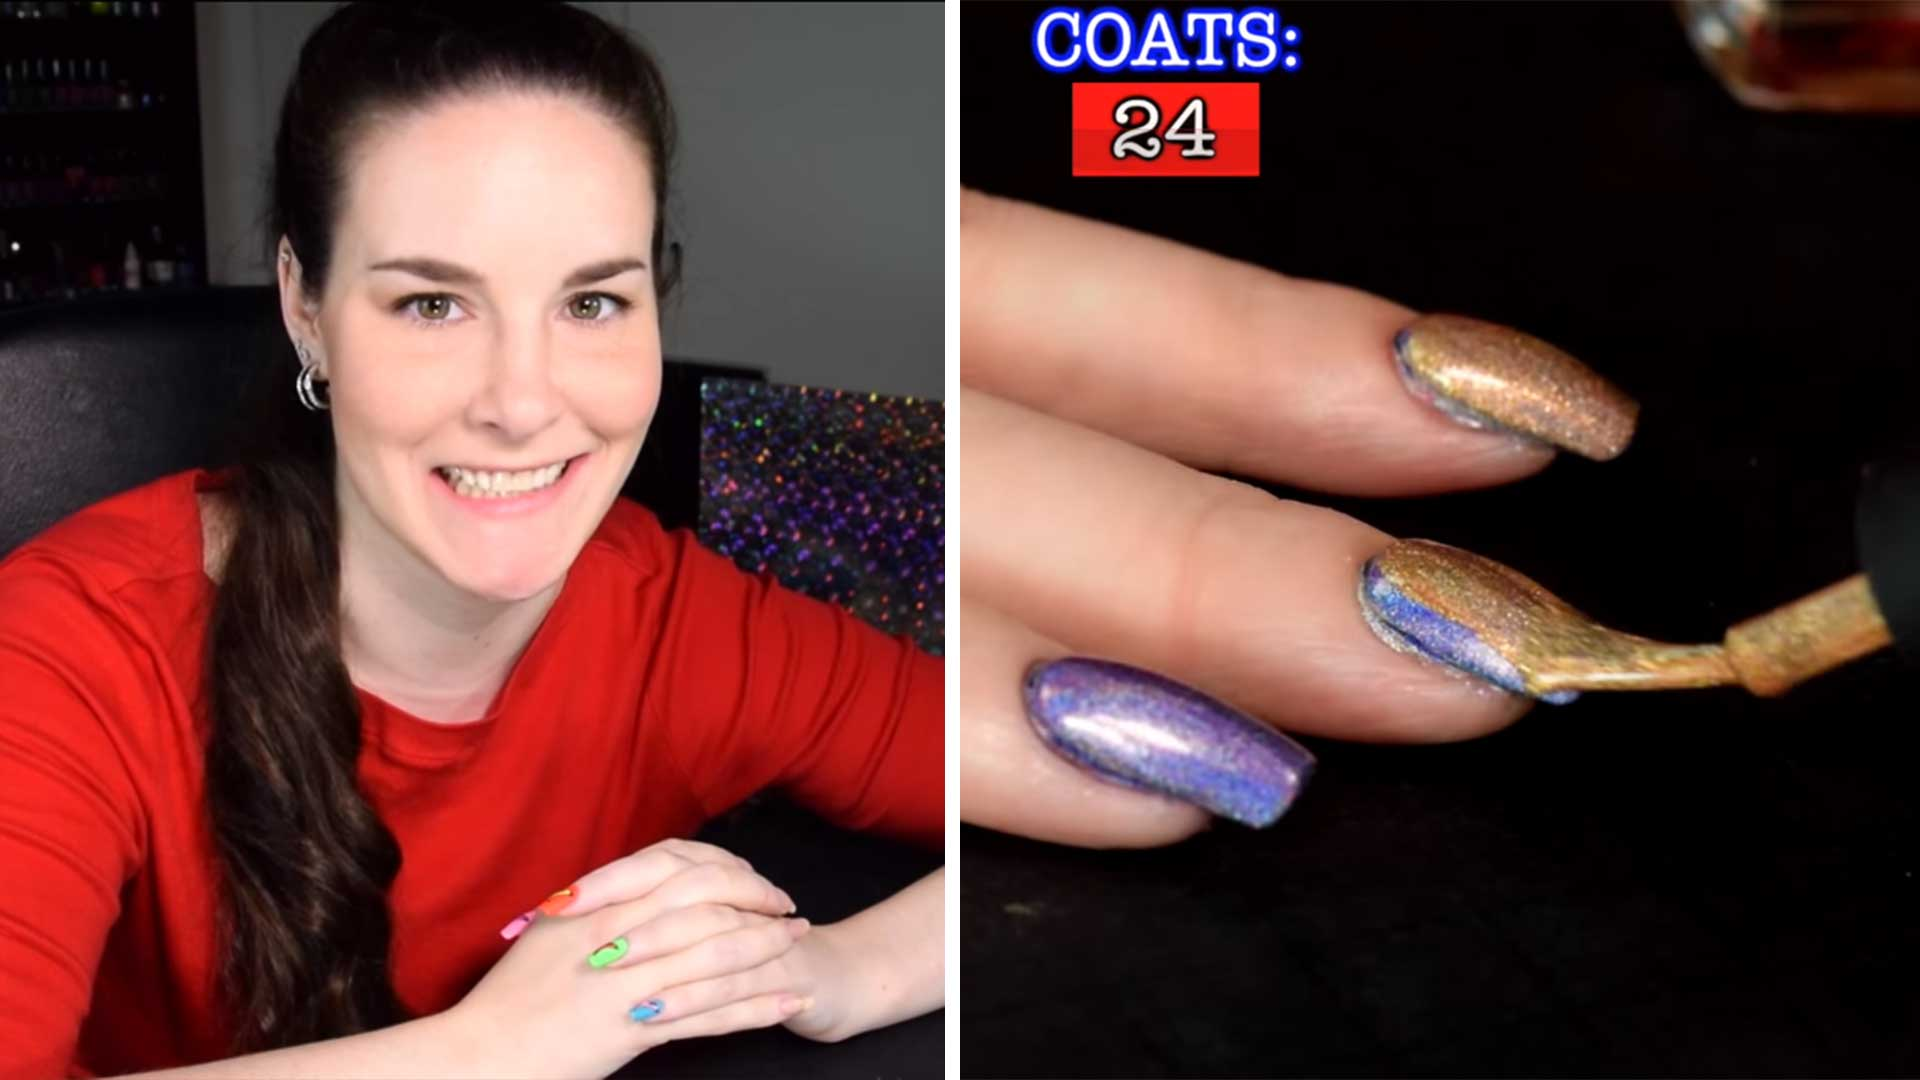 Simply Nailogical Know Your Meme